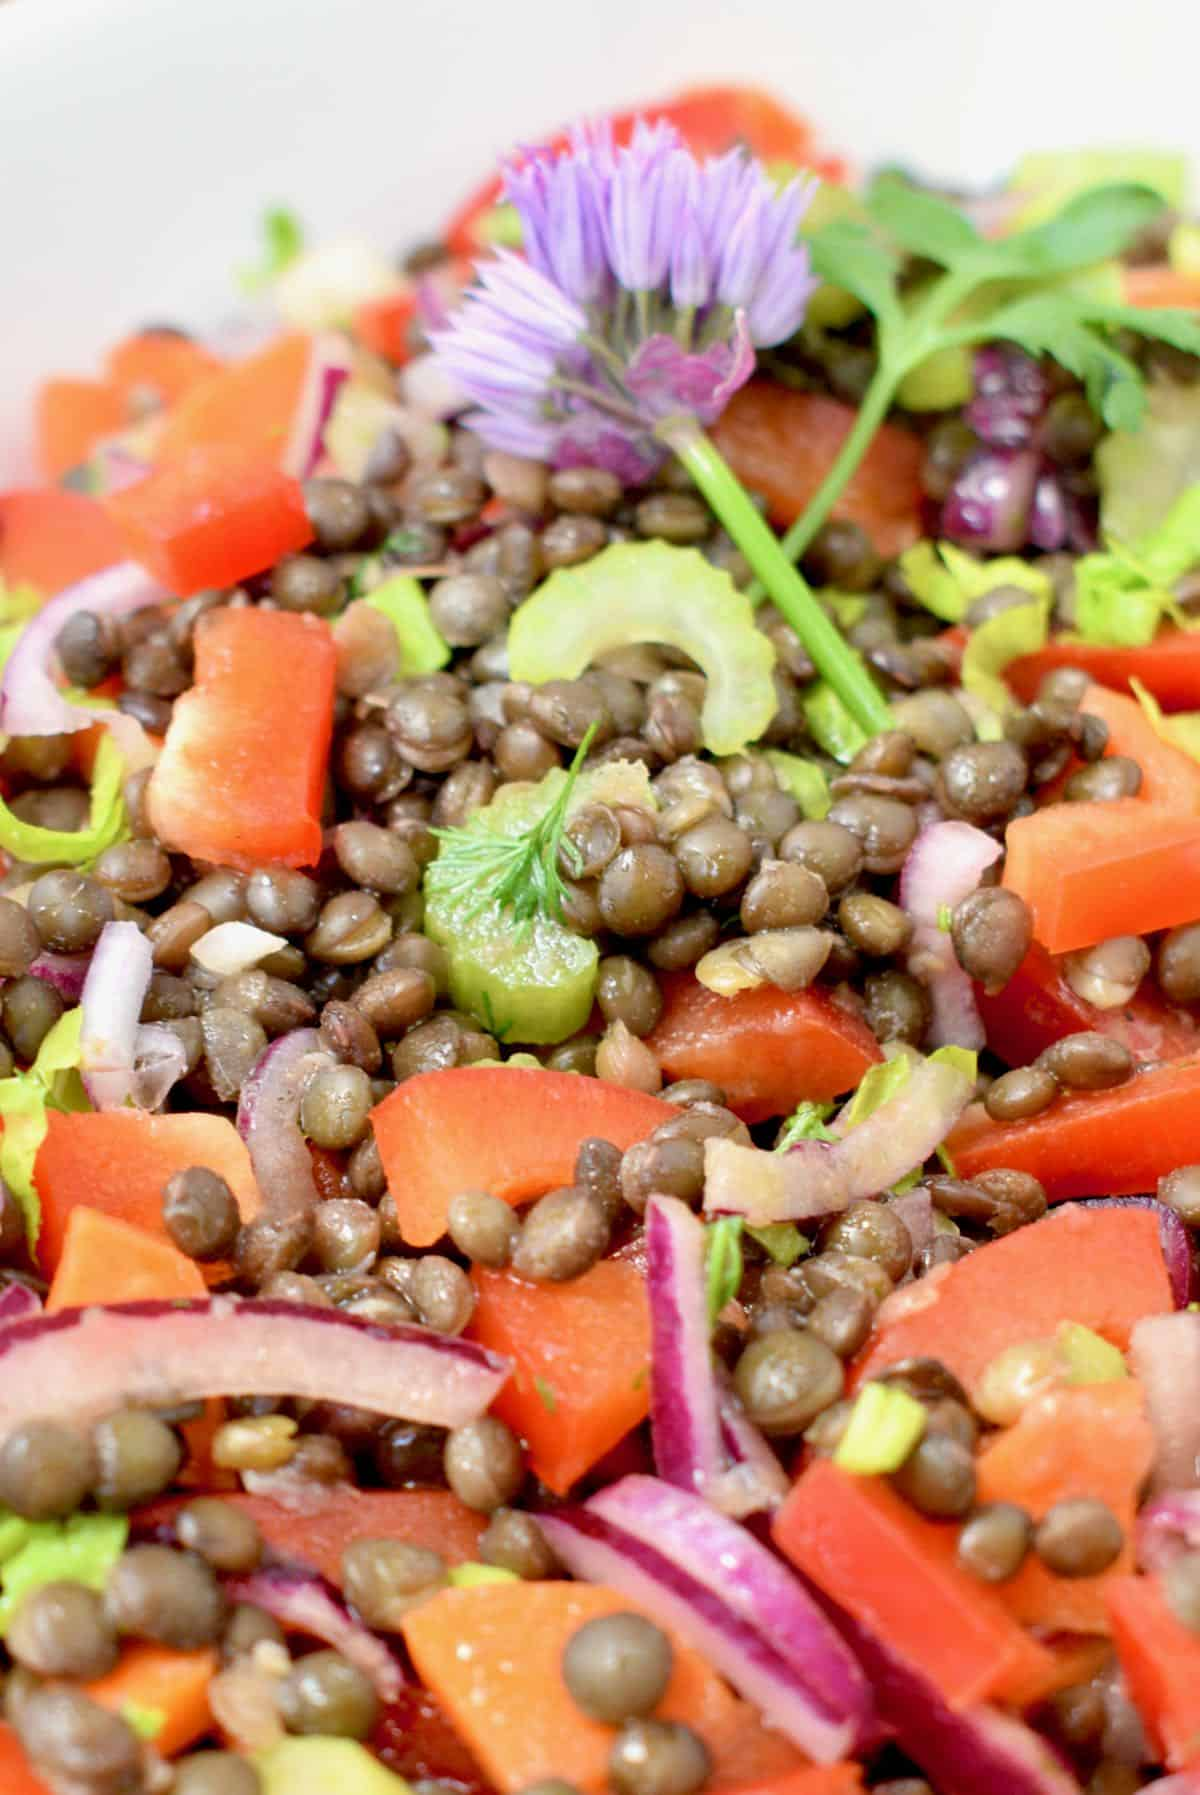 Slices of red pepper, red onion, celery, and carrot mixed with cooked, dressed black lentils